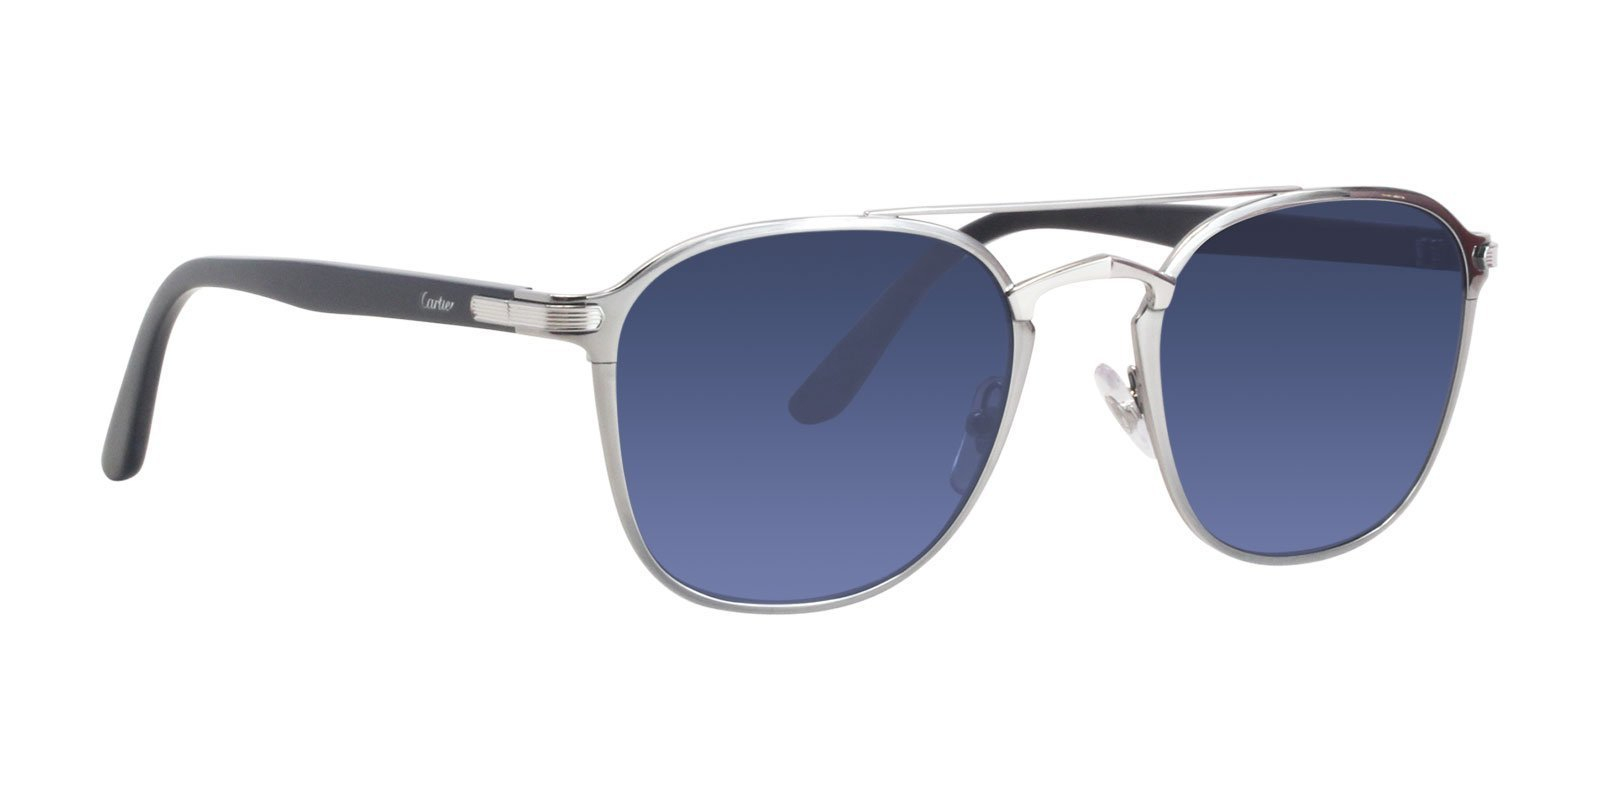 Cartier - Occhiale da Sole Uomo, Light Ruthenium Silver/Blue Shaded Mirror CT0012S 003  C54